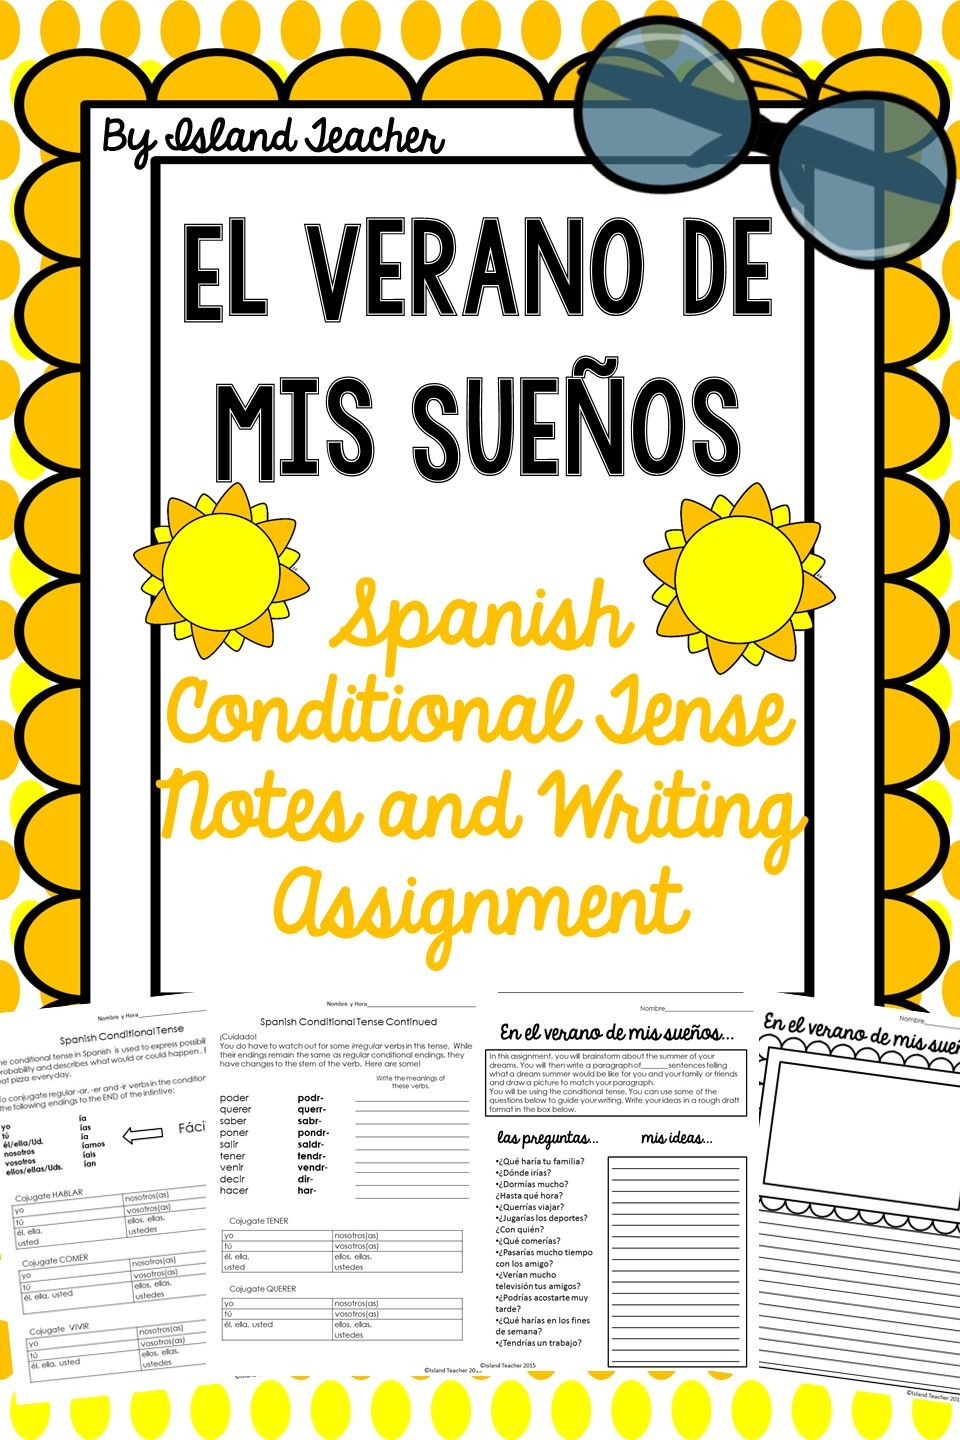 worksheet Conditional Tense Spanish Practice Worksheets spanish conditional notes and writing assignment el verano de mis practice conjugating in the tense then write about summer of my dreams